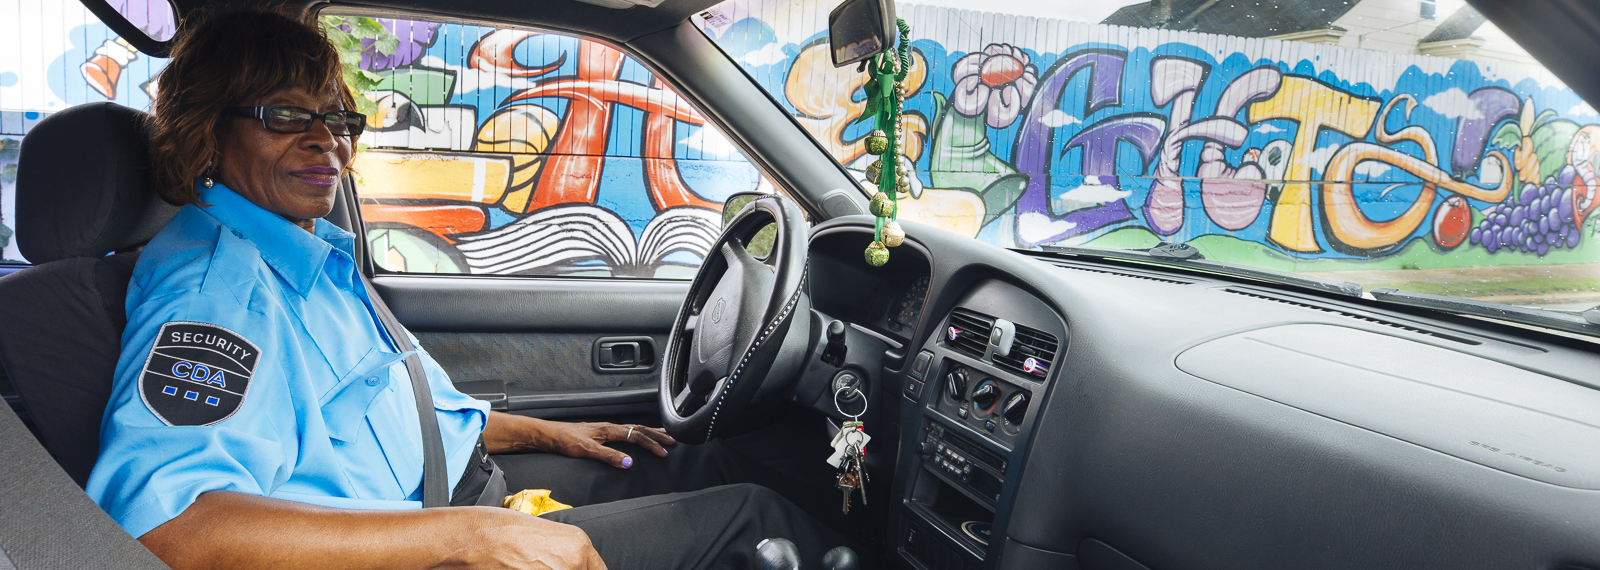 Heights resident Ethel McBride drives to work in front of a community mural near Treadwell Elementary and Middle School grounds.  <span class='image-credits'>Ziggy Mack</span>